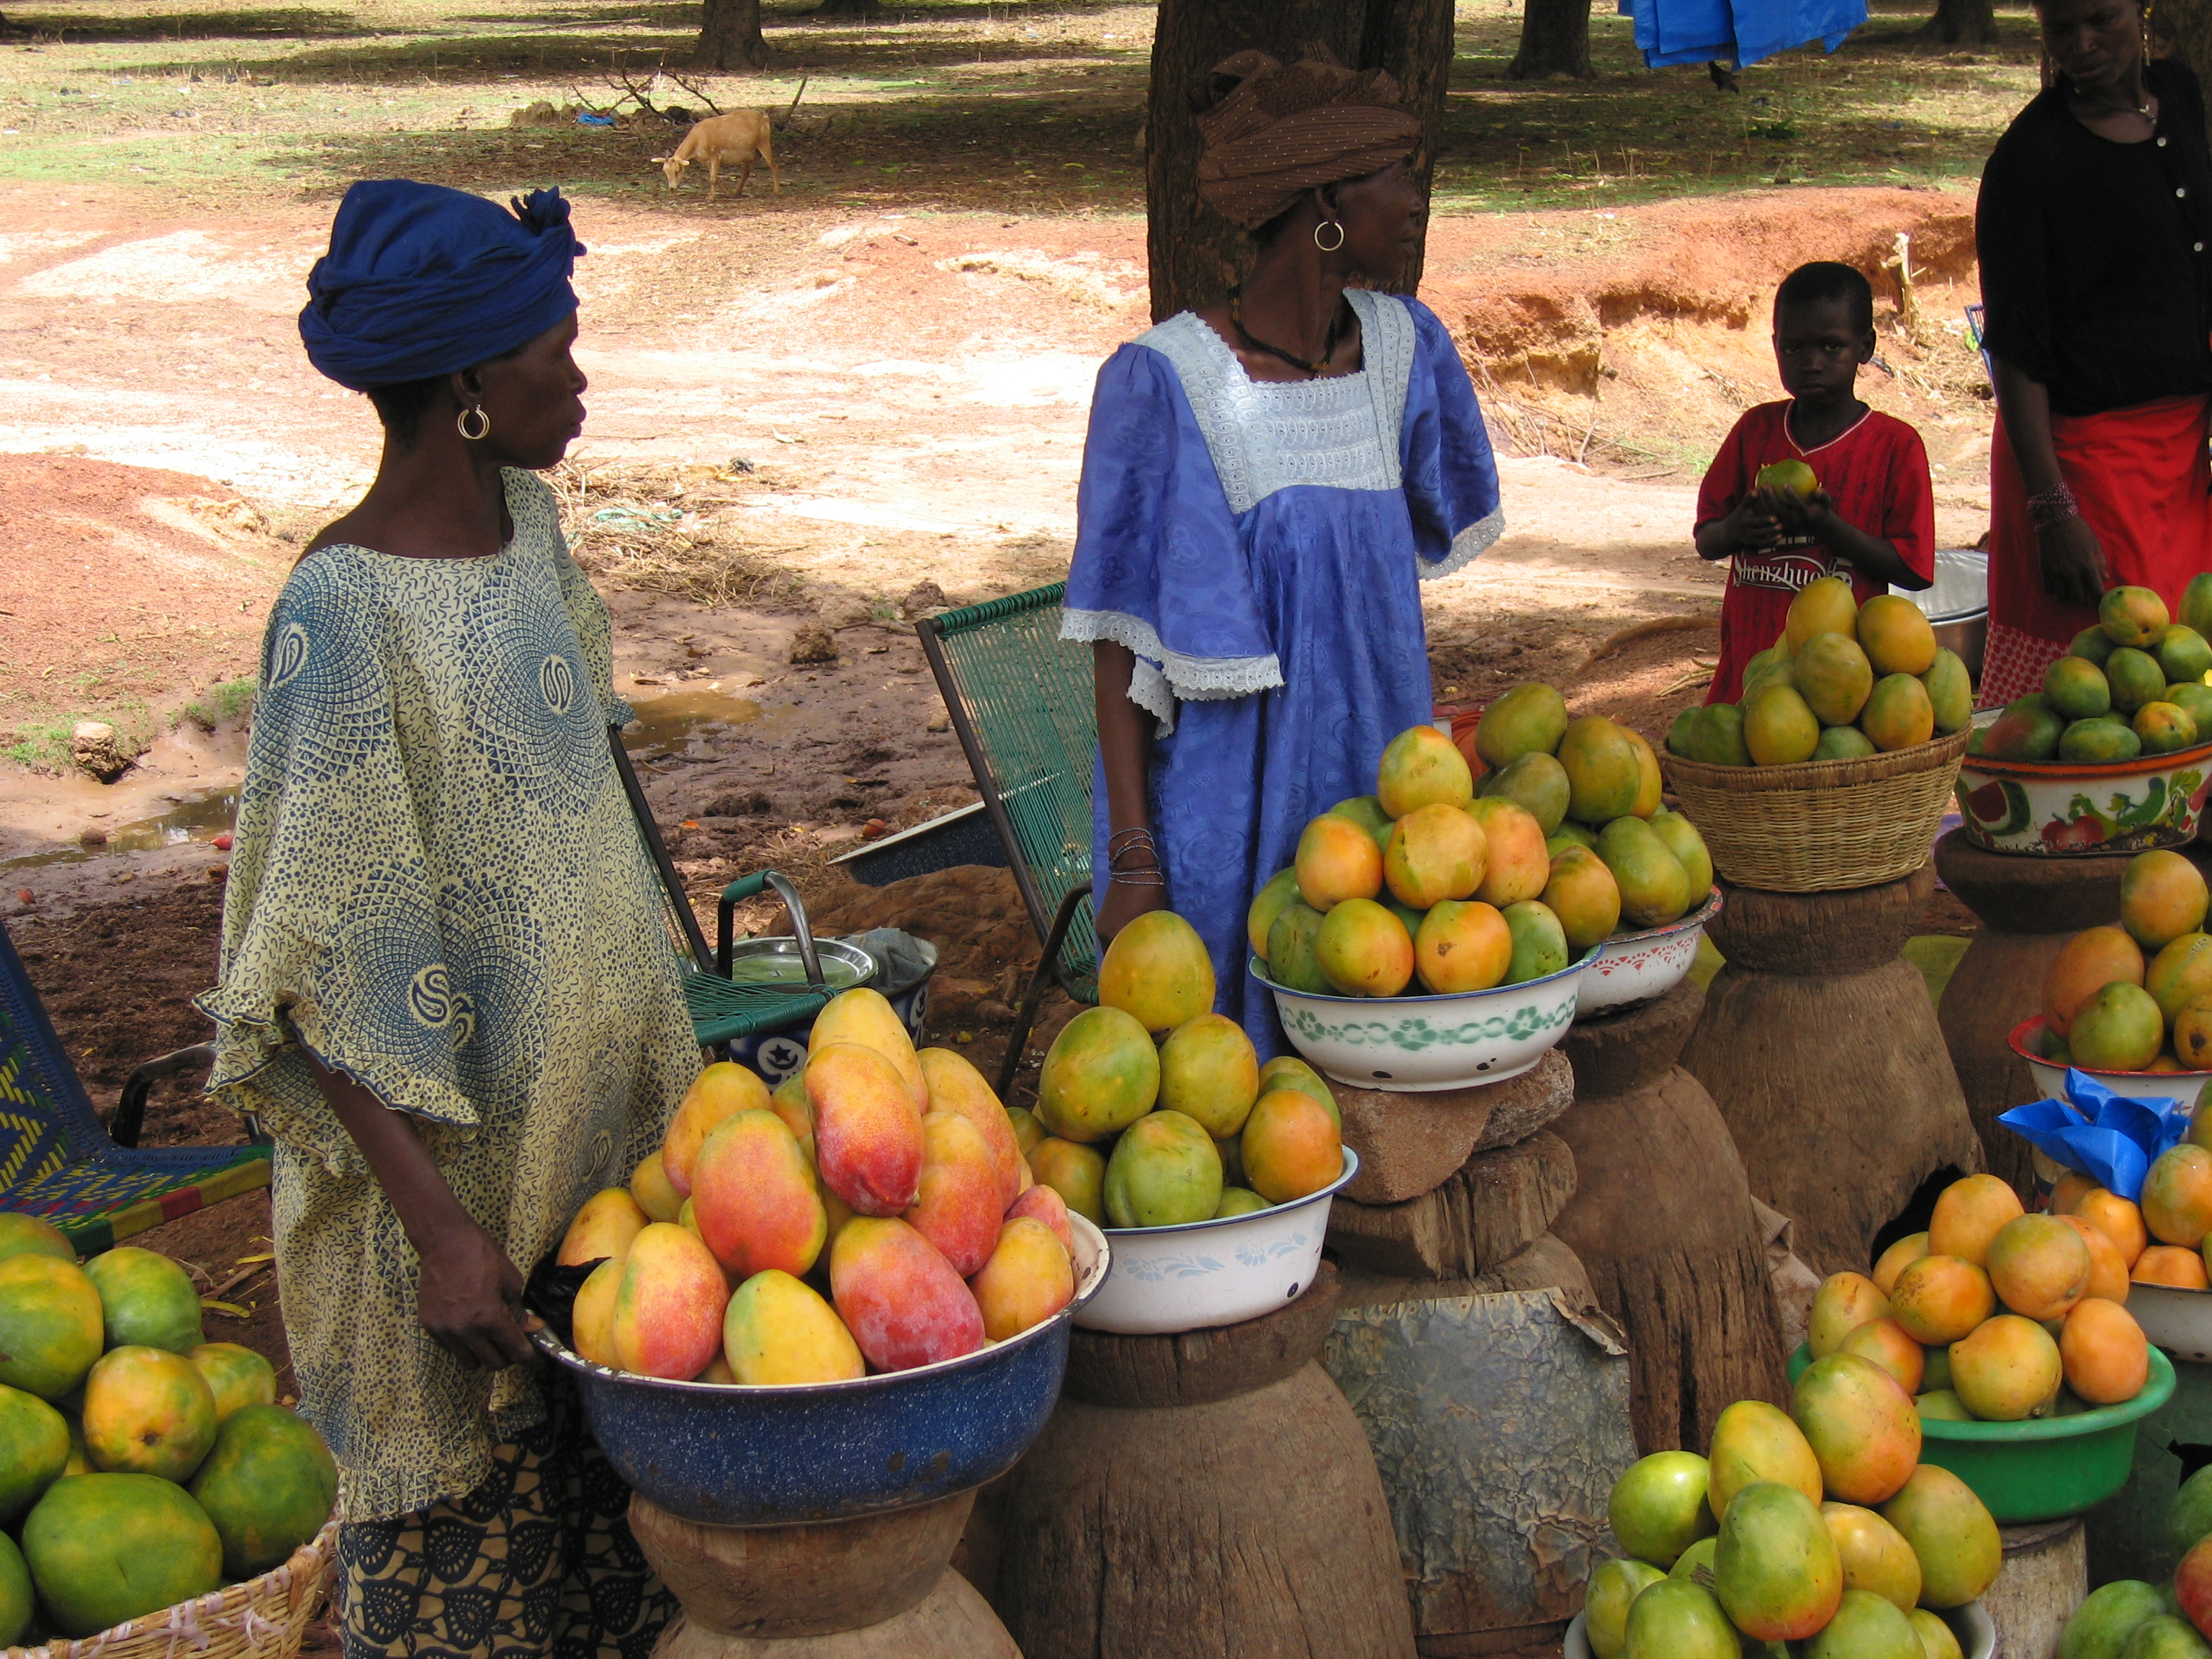 Women selling fruits. The pandemic has also deepened inequality and projected growth does not promise a better life. www.theexchange.africa